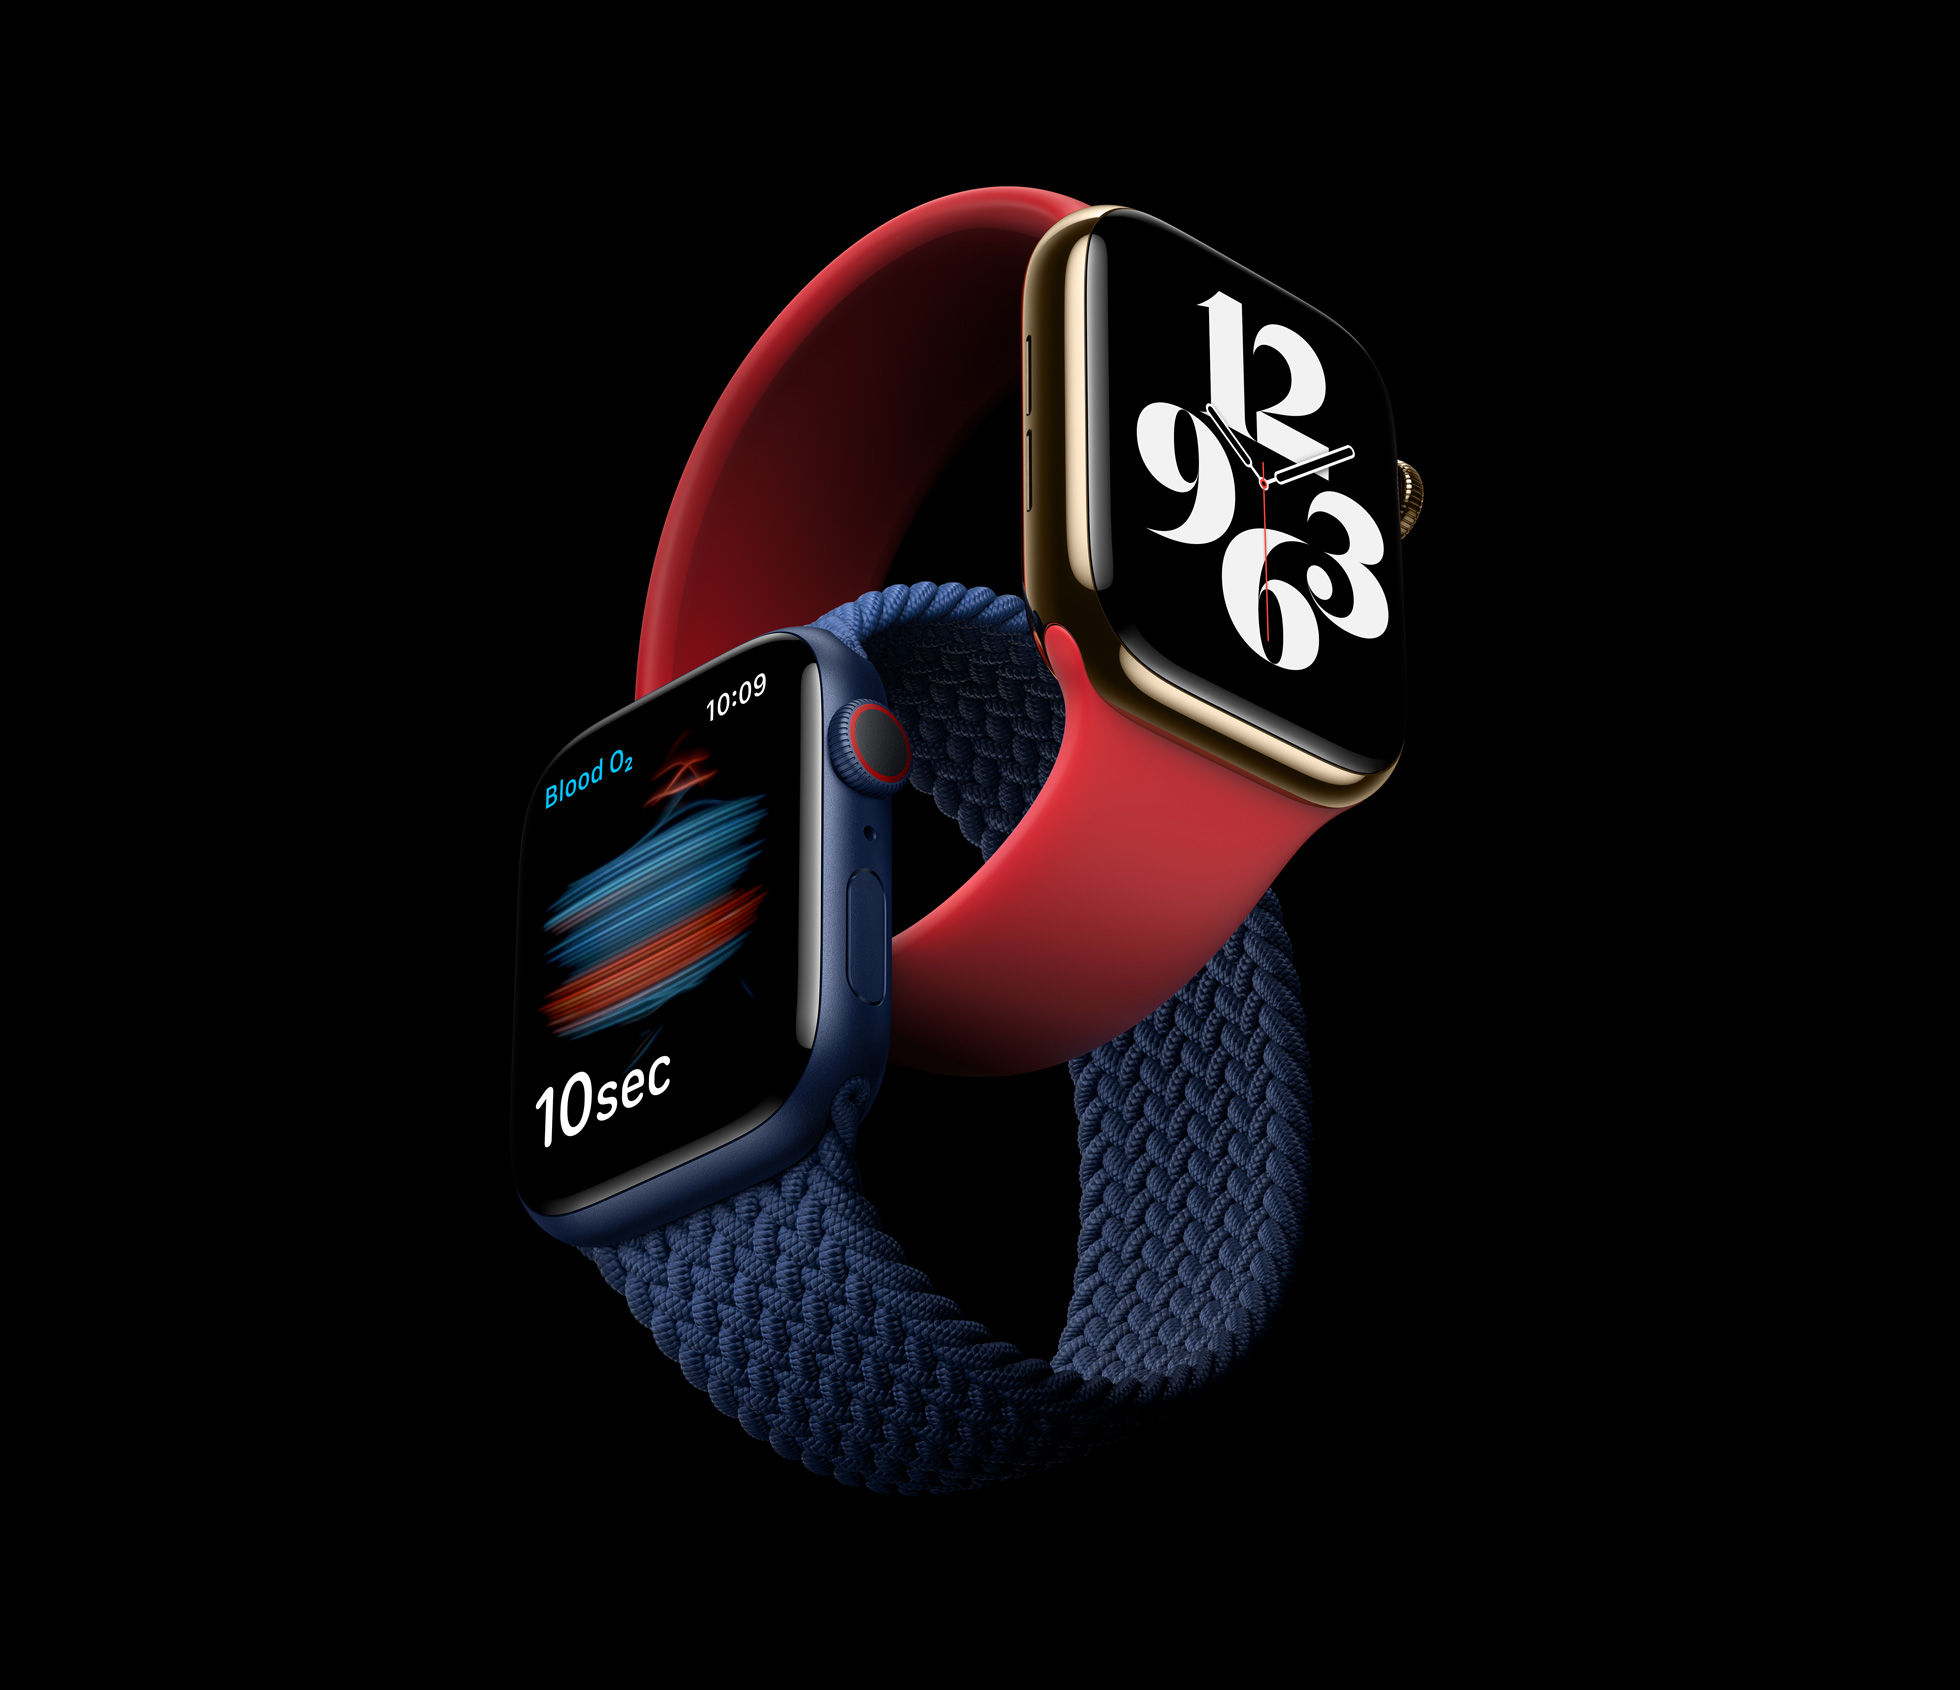 Apple Watch Series 7 may come with blood pressure, glucose, and alcohol monitoring capabilities